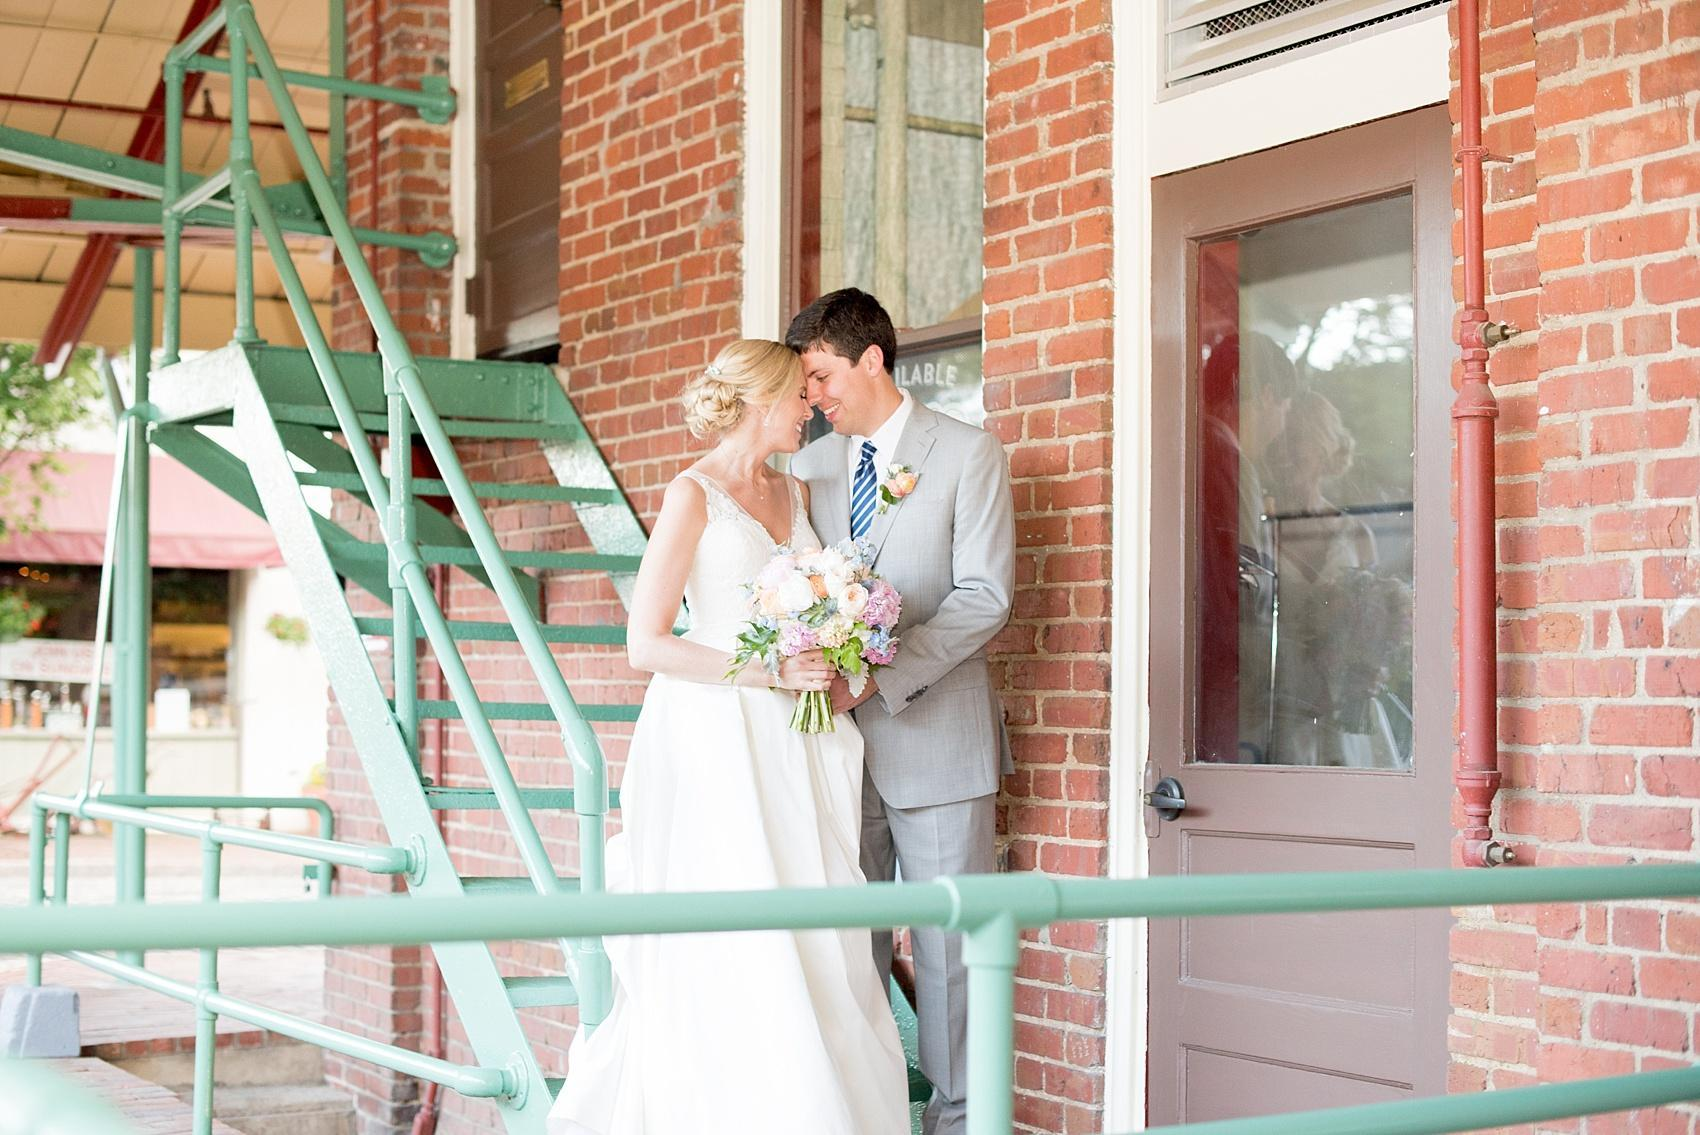 Mikkel Paige Photography photos of a downtown Raleigh Market Hall wedding with pictures of the bride and groom.